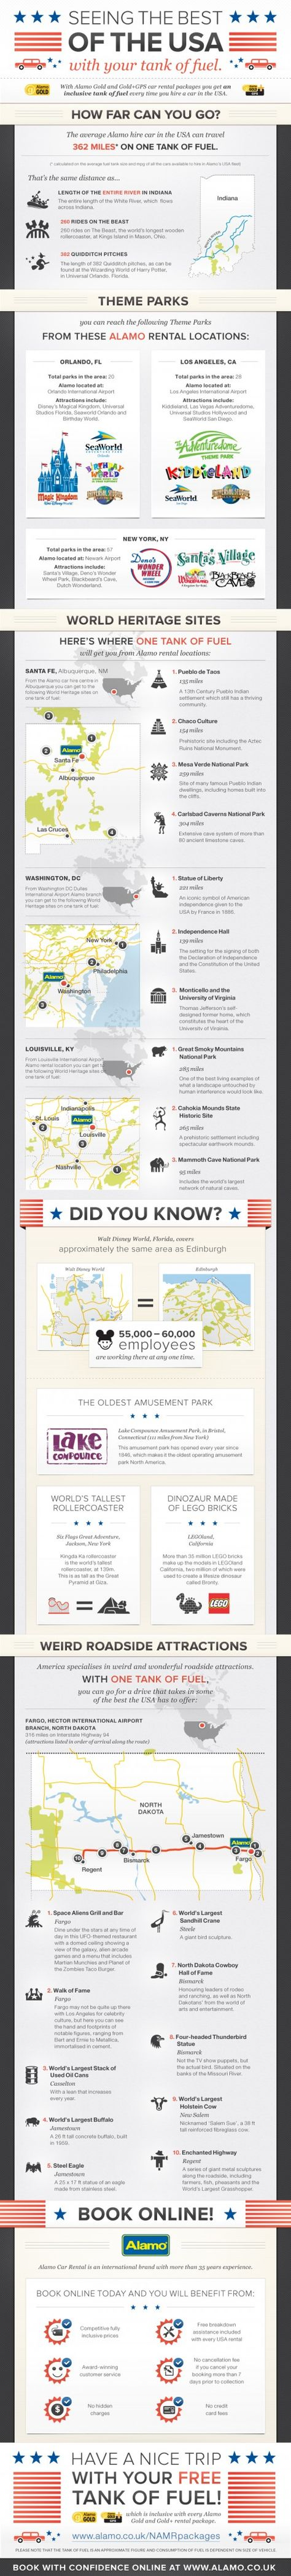 Alamo coupons online - Best 25 Alamo Car Rental Usa Ideas On Pinterest National Alamo Mount Rushmore National Park And Fun Facts About America